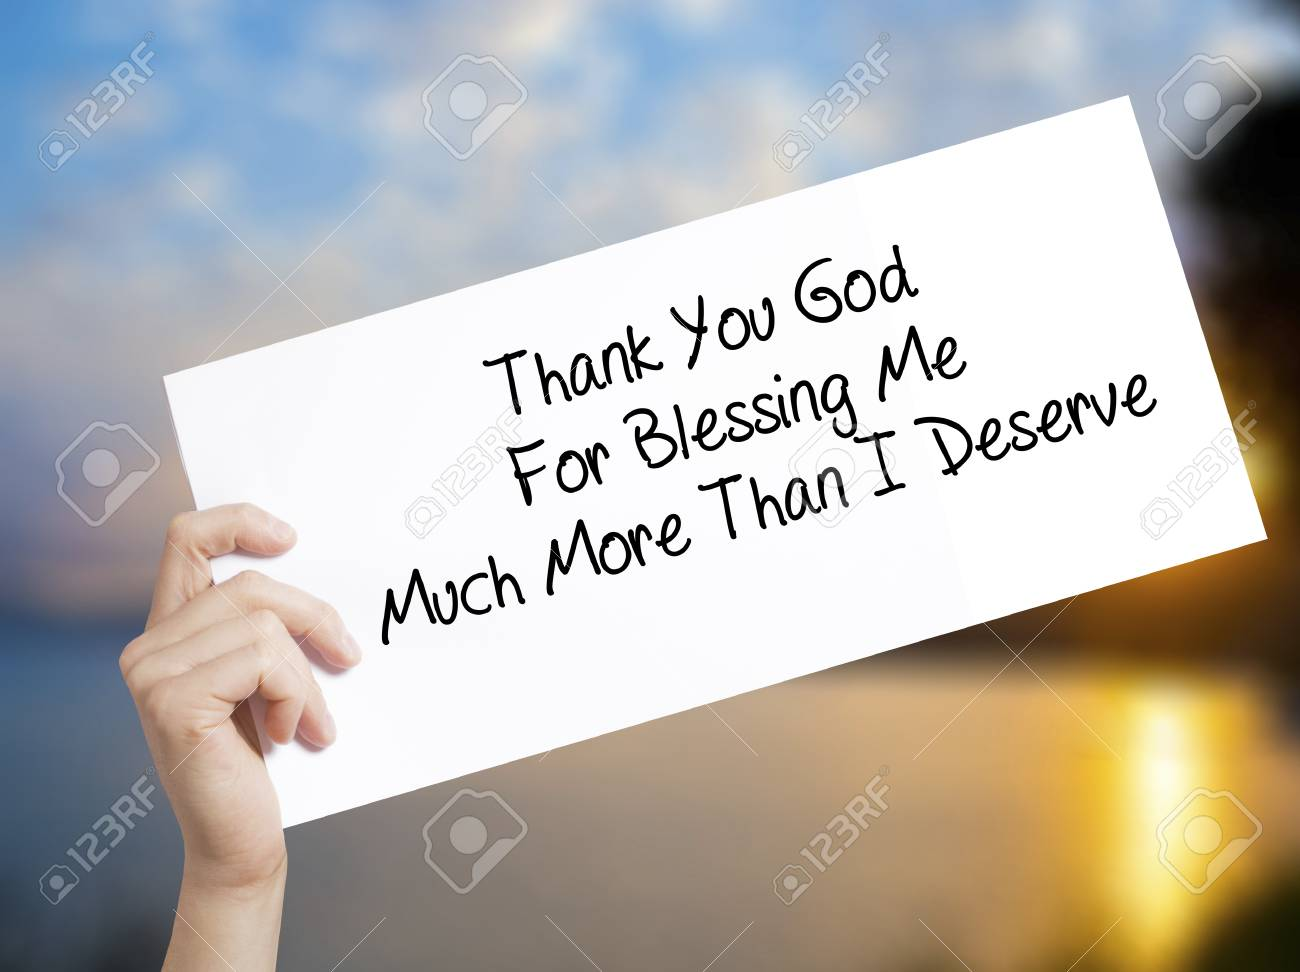 Thank You God For Blessing Me Much More Than I Deserve Sign On